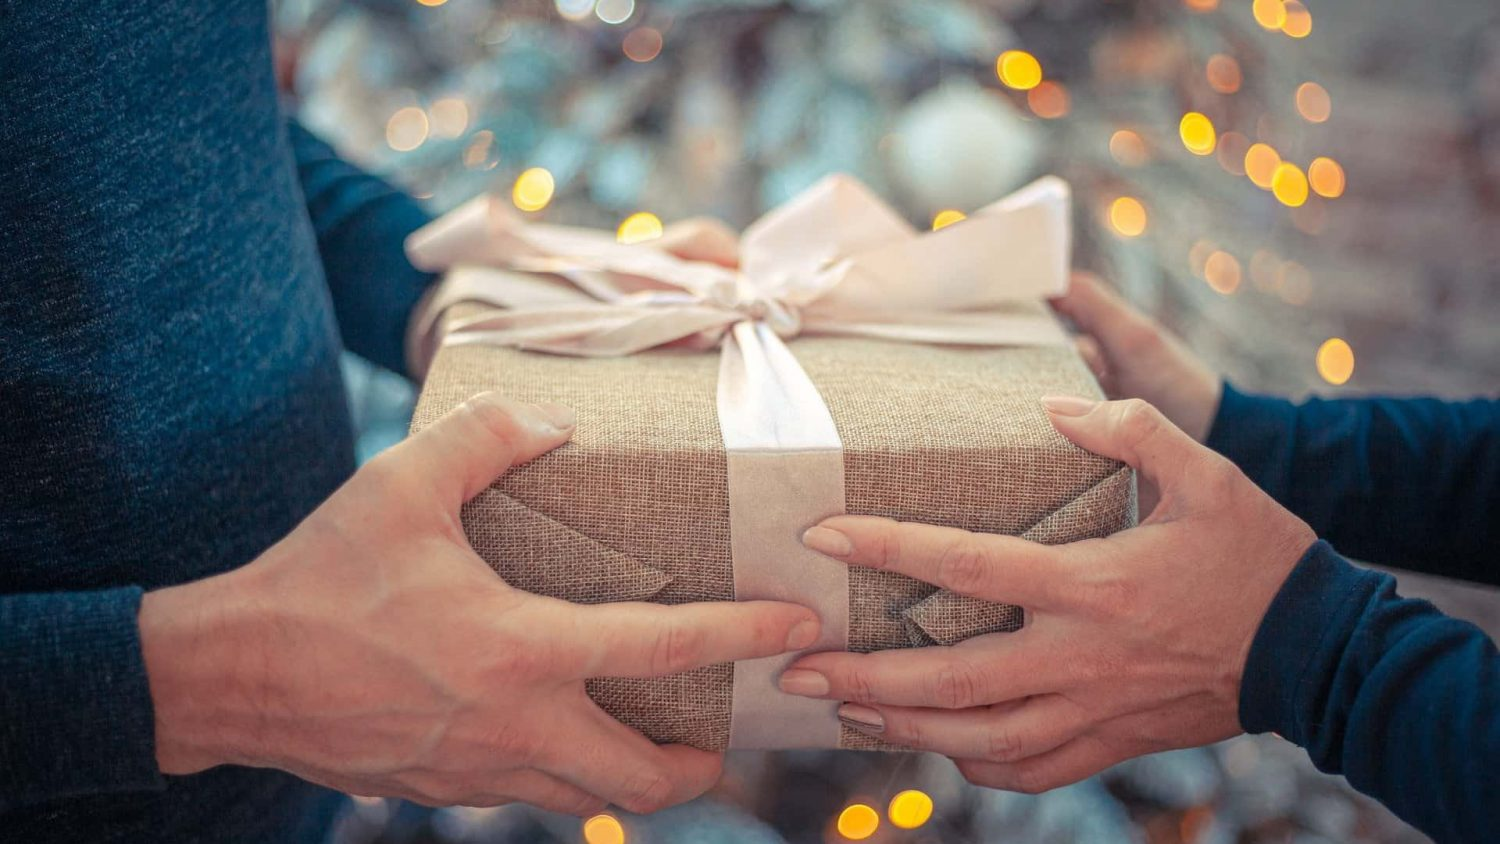 40 Best Gifts for Men Who Have Everything – A Complete Buying Guide for a Best Gift that Will Leave The Man You Care About Speechless